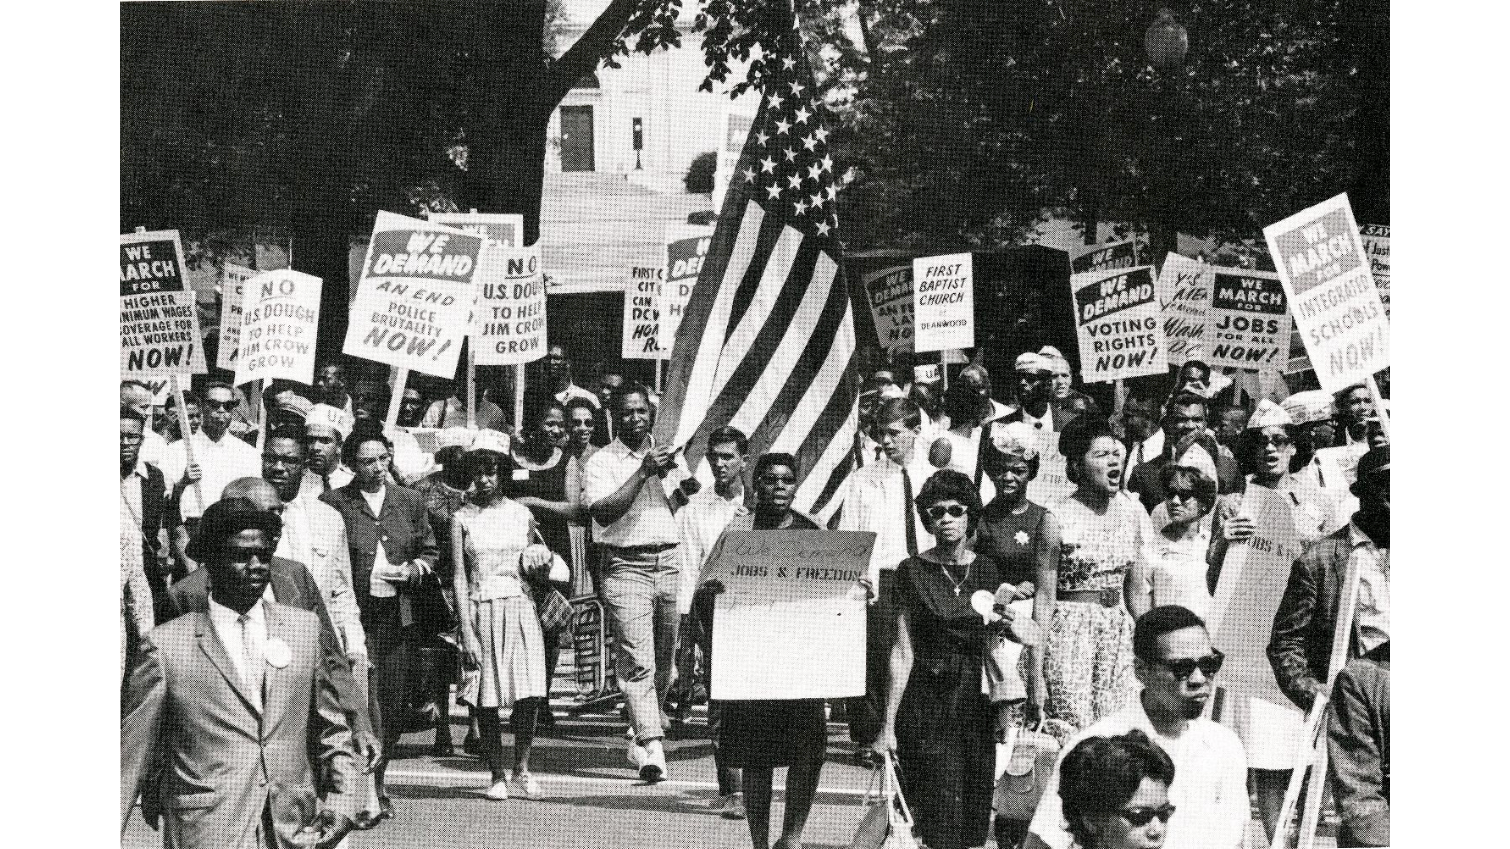 Photograph of Participants in 1963 March on Washington